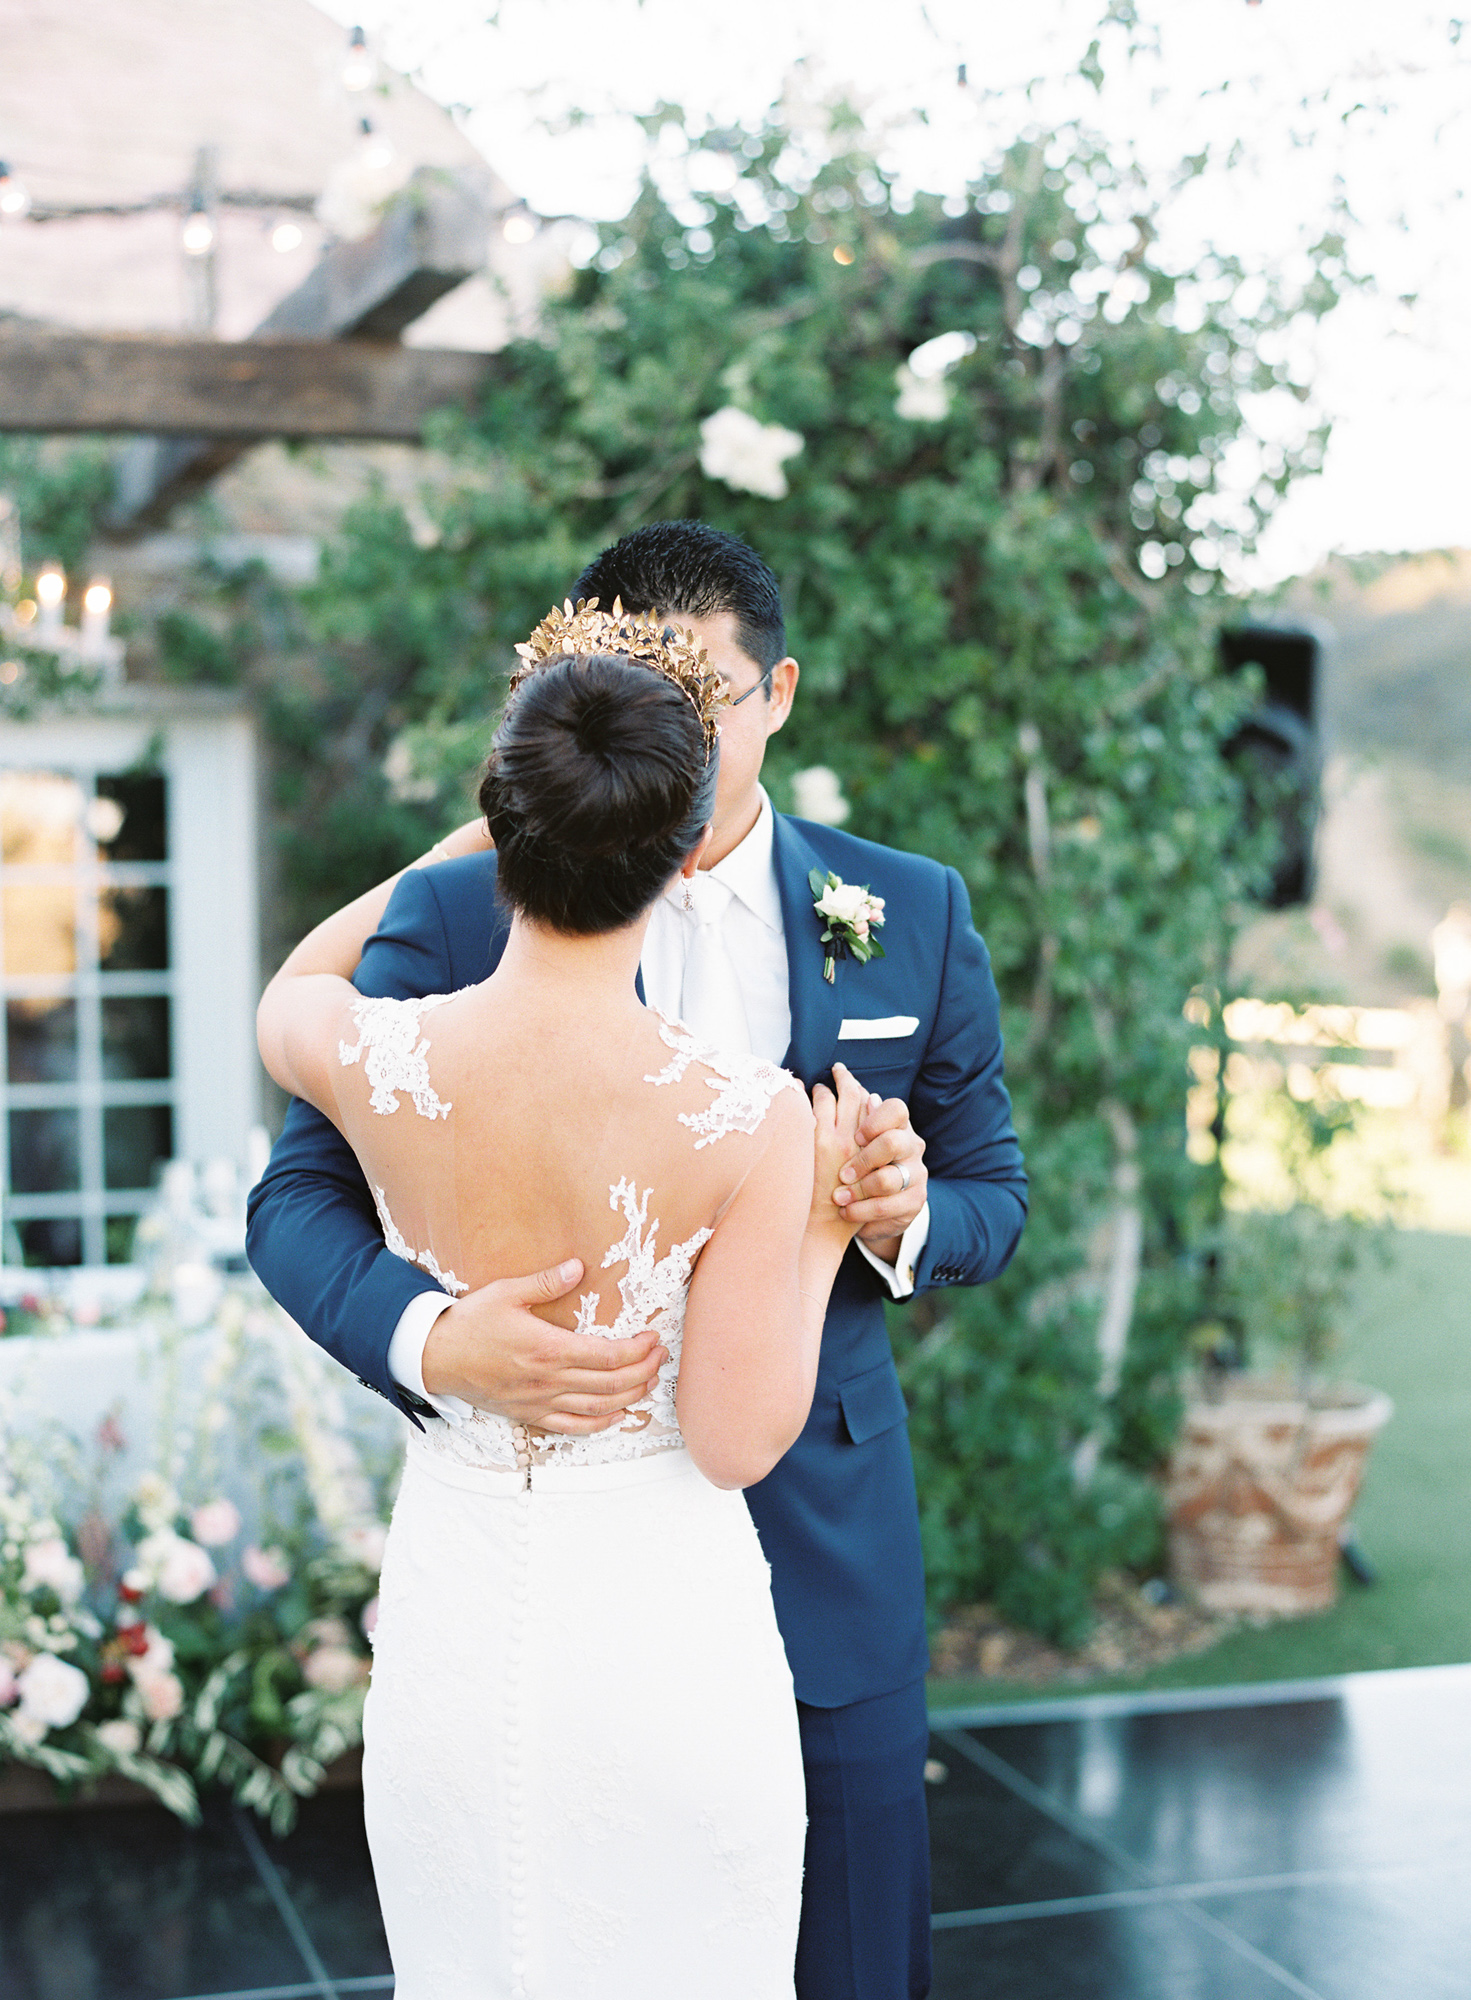 Saddlerock-Ranch-Dome-Film-Wedding-30.jpg